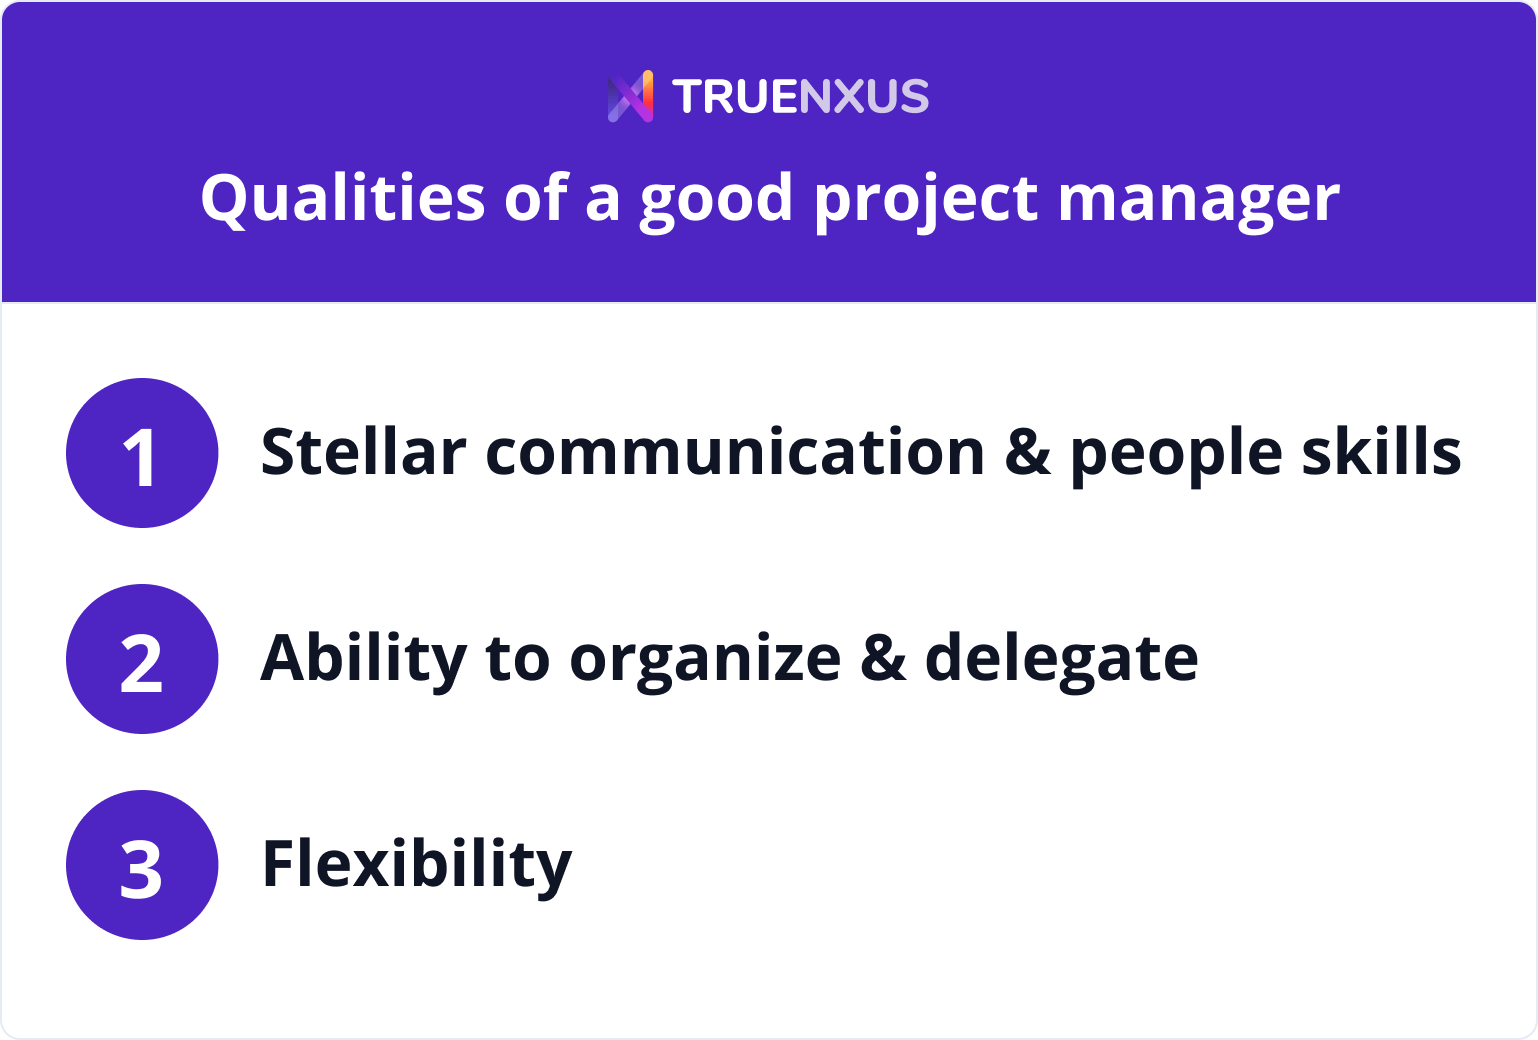 Qualities of a good project manager infographic